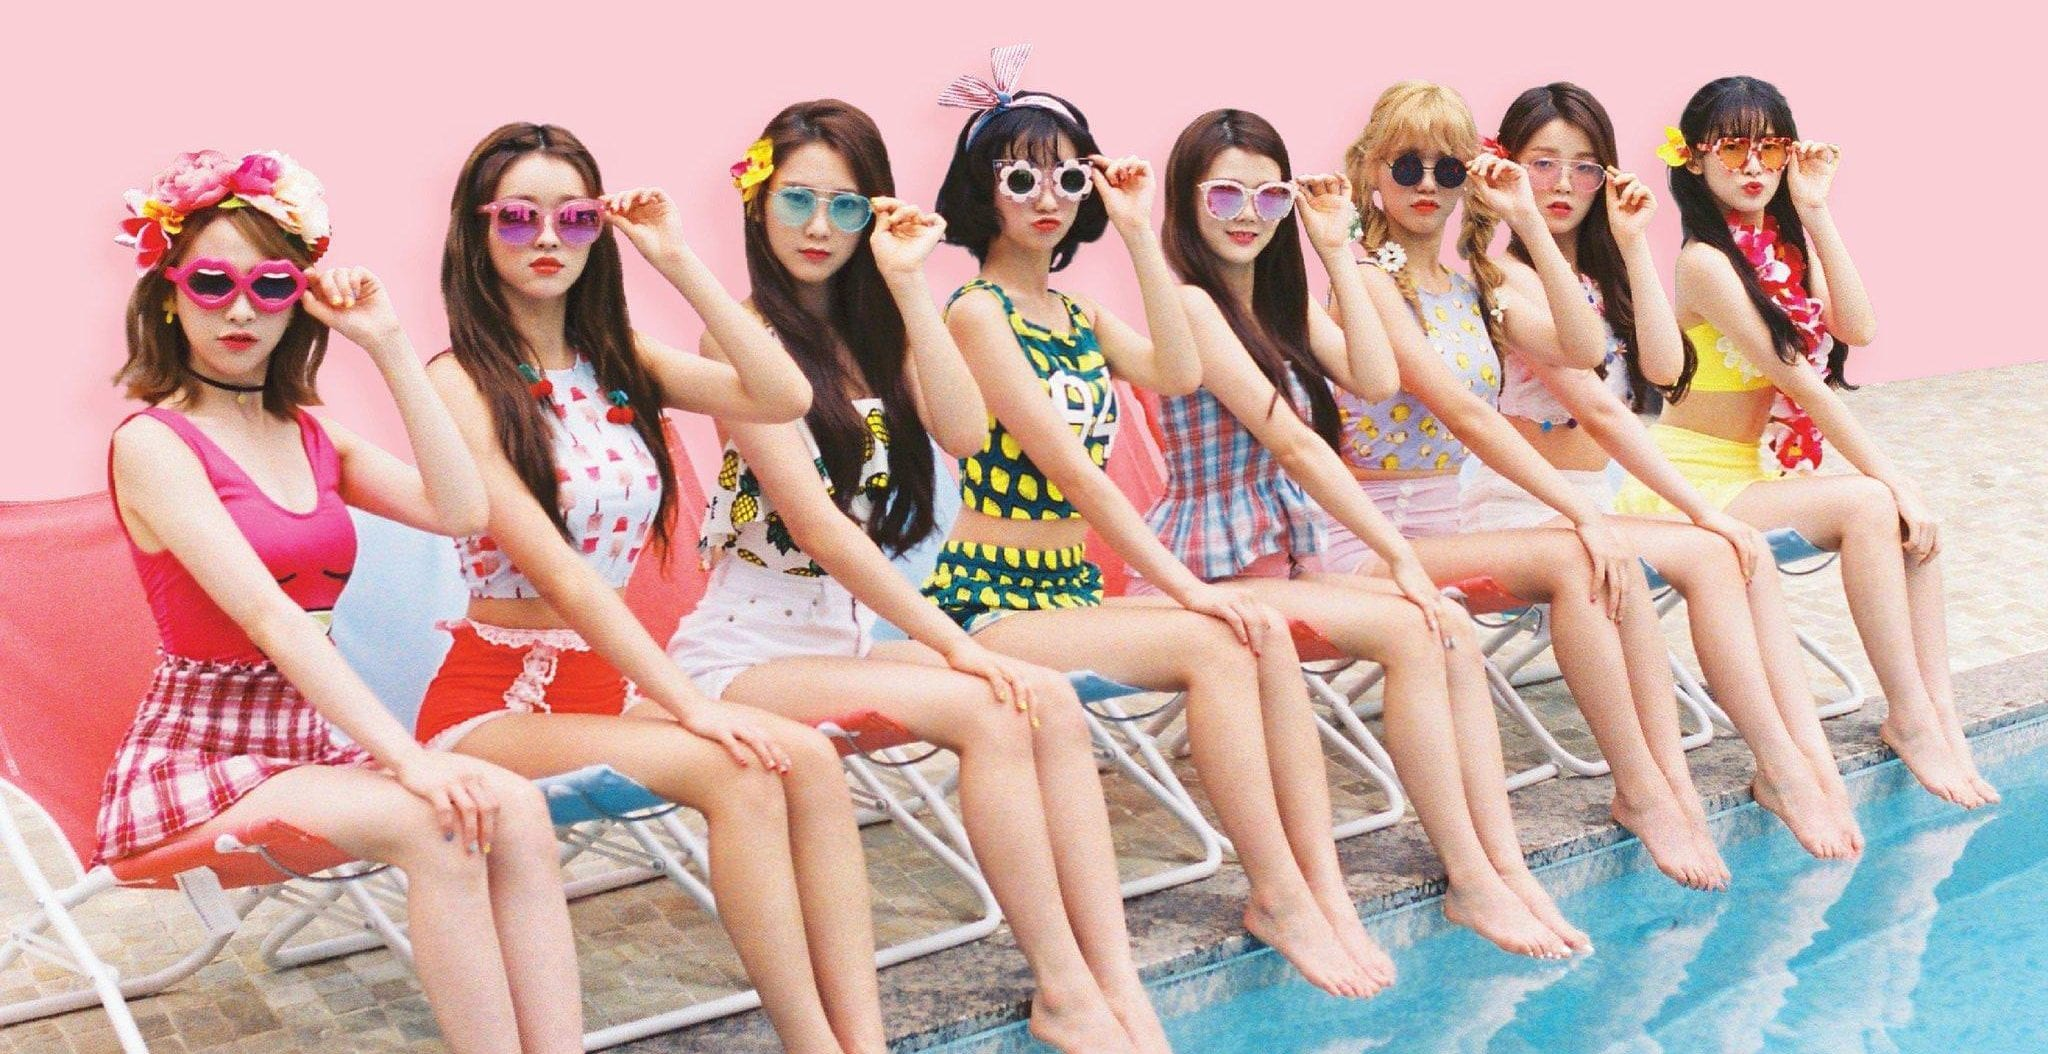 WTK QUIZ: How Well Do You Know K-Pop Girl Groups?